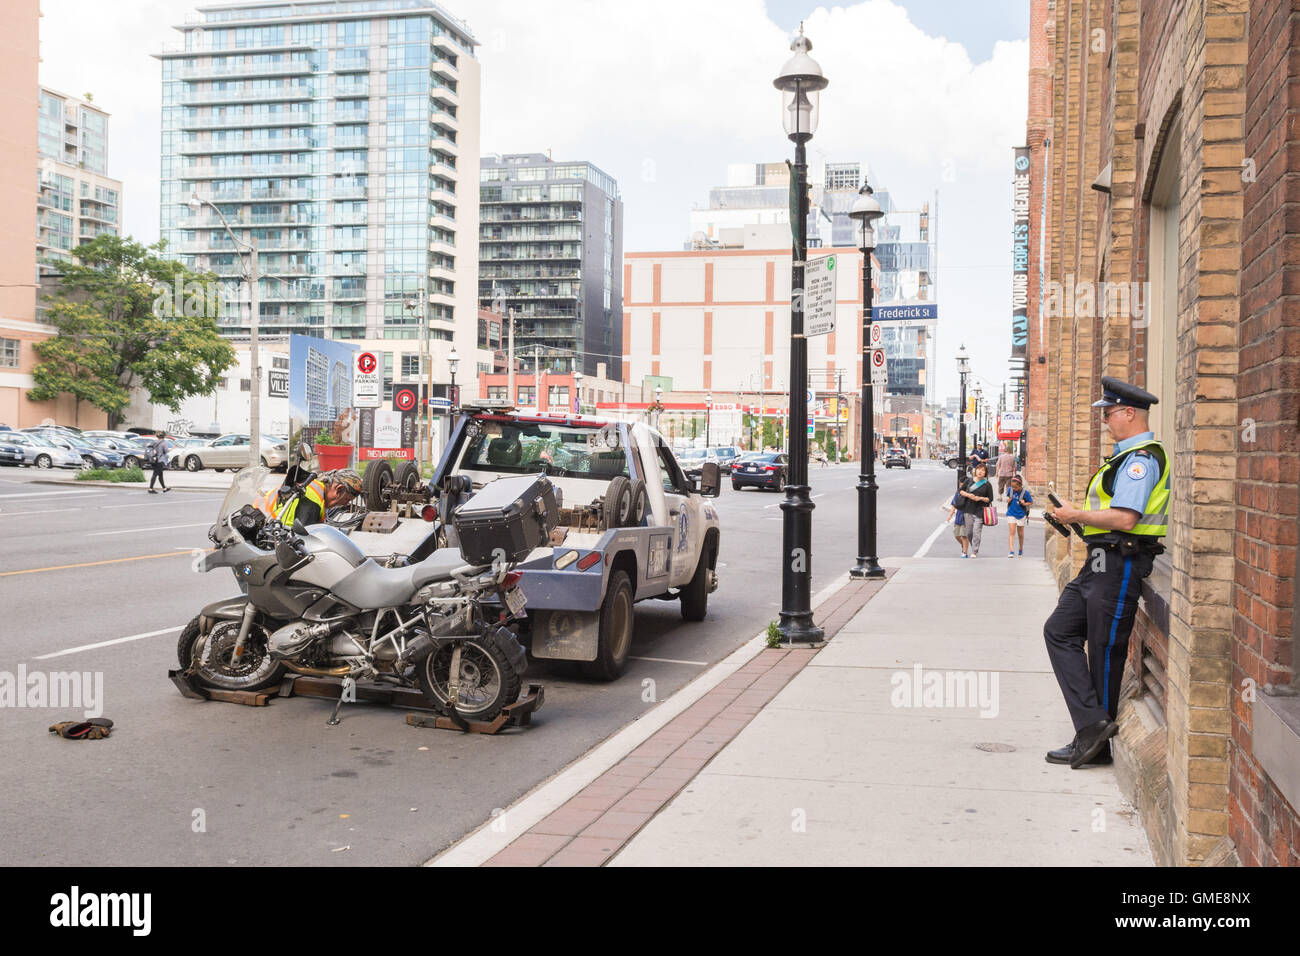 Motorbike Motorcycle being put on tow truck to be towed away - Front Street, Toronto, Canada - Stock Image